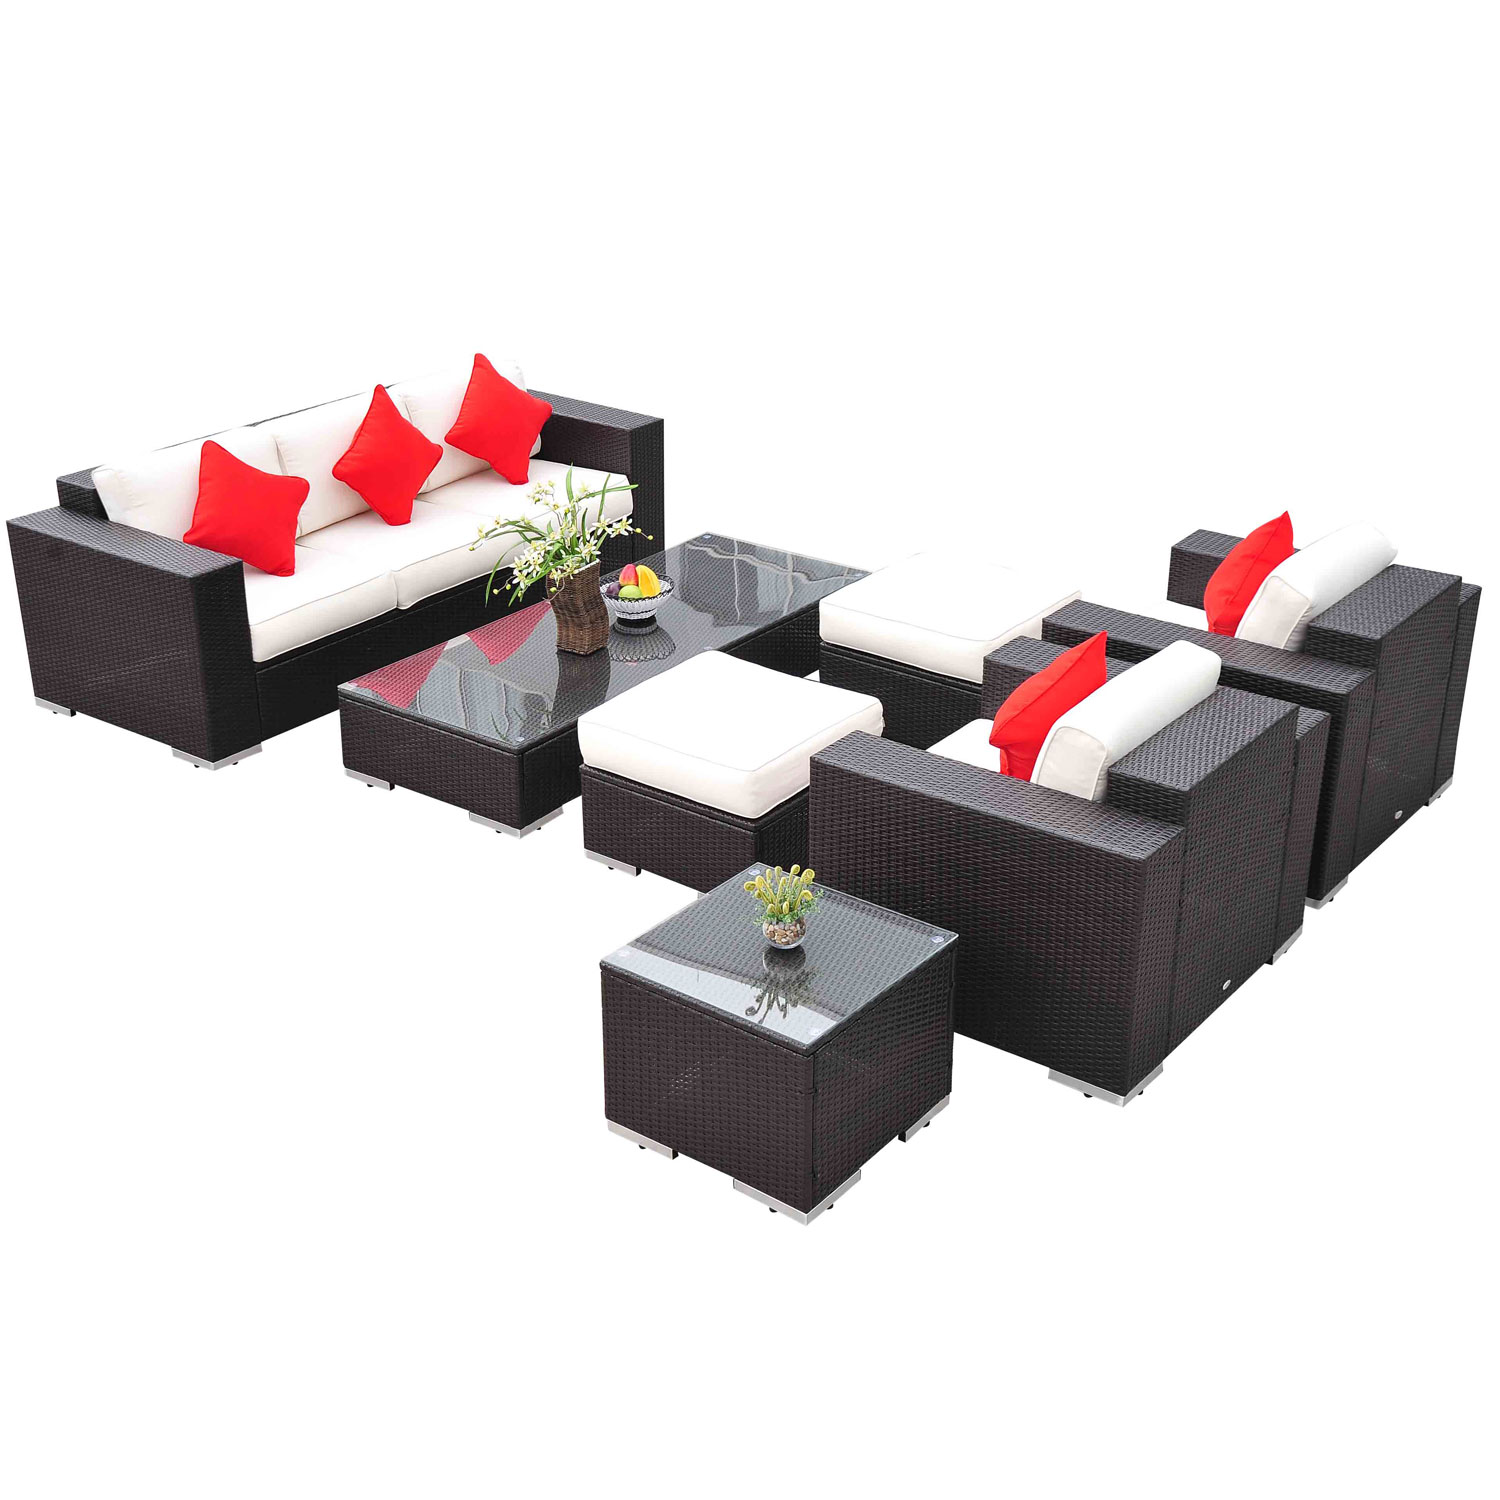 Outsunny 7pc PE Rattan Wicker Sectional Patio Sofa Furniture Set Walmart